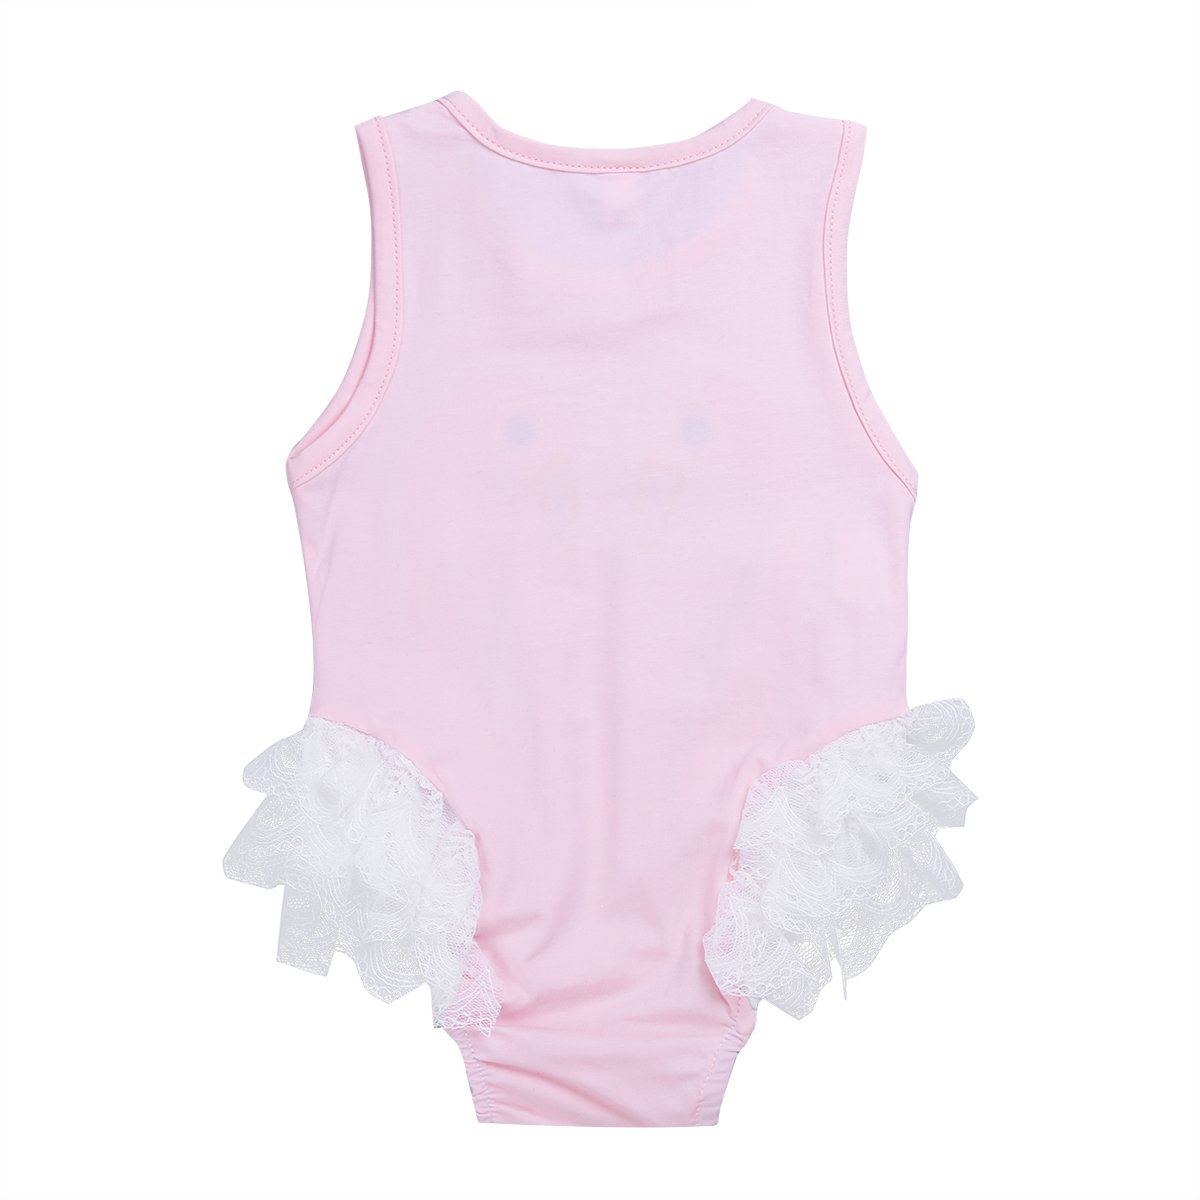 Agoky Infant Baby Girls Sleeveless Swan Pattern Romper Jumpsuit Costumes